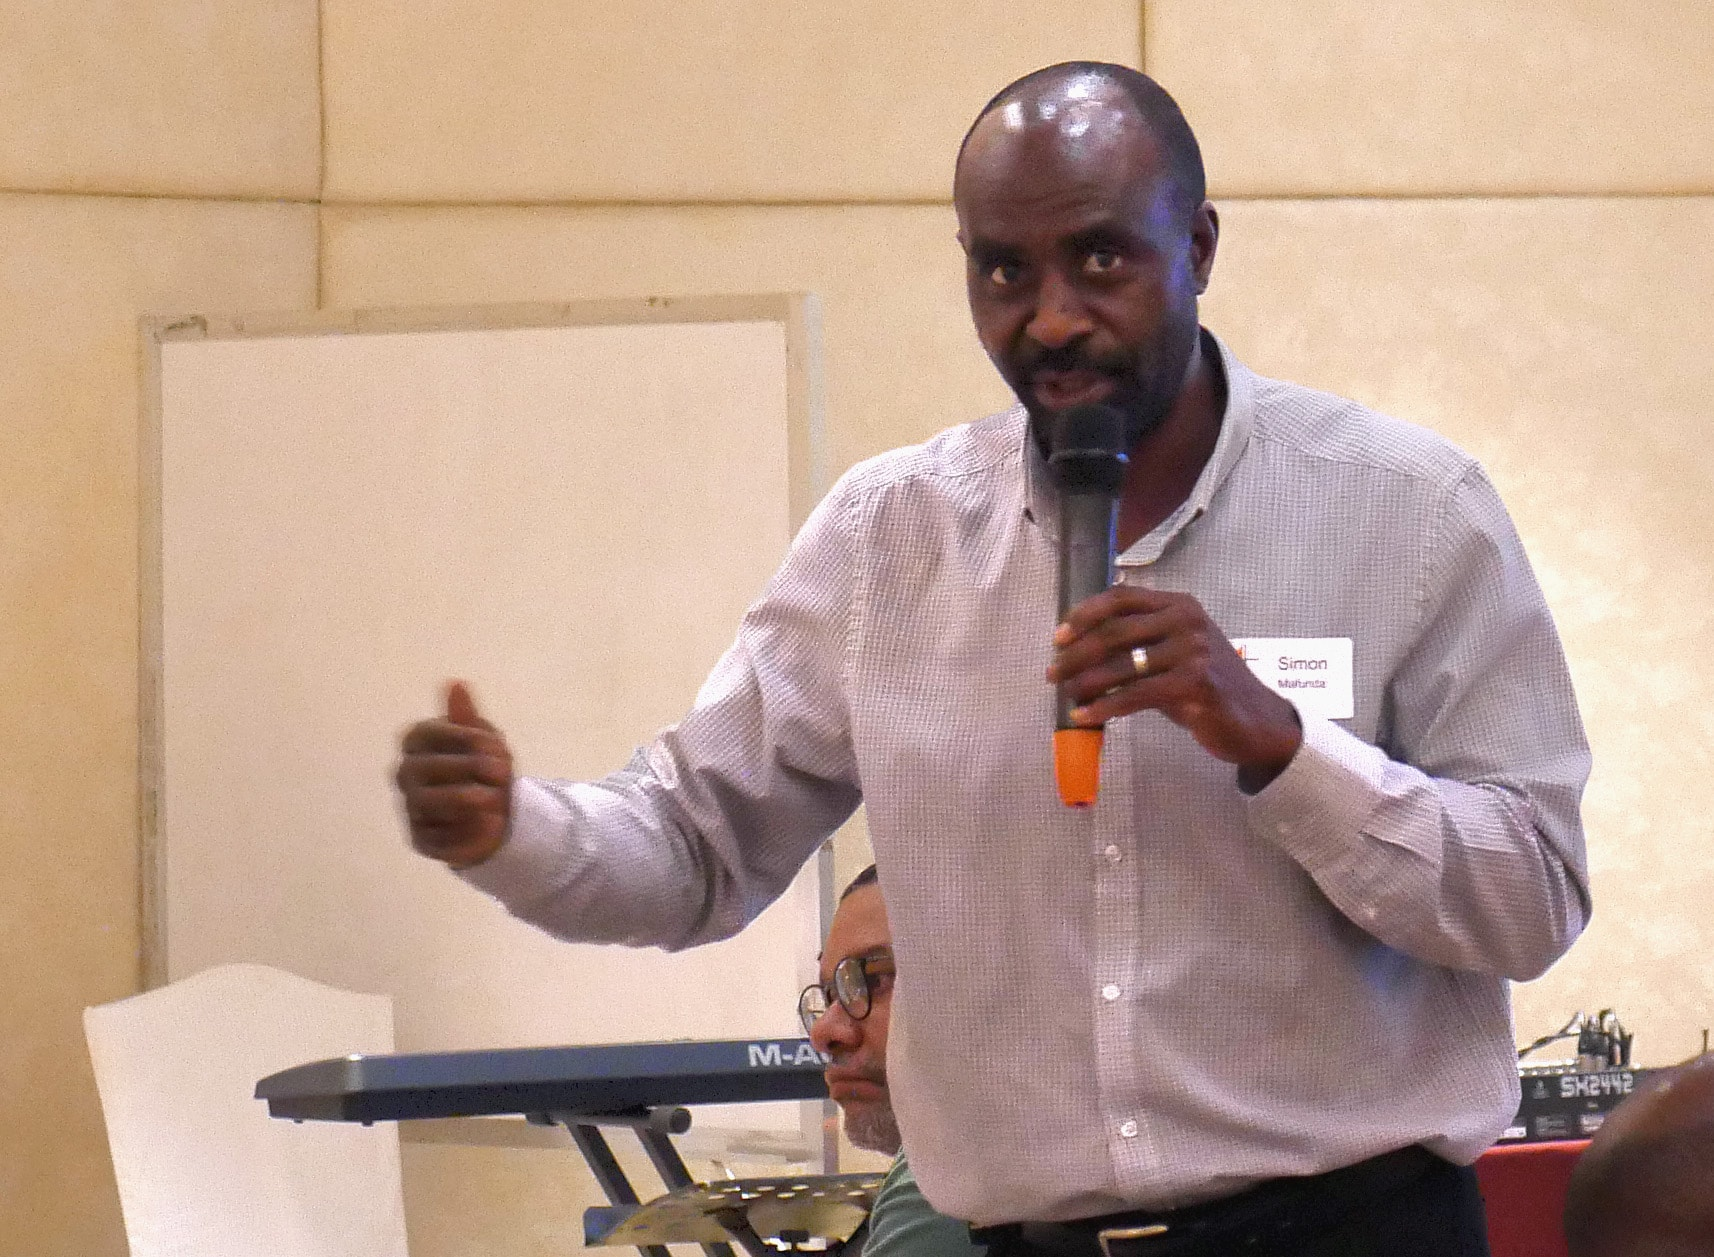 """Simon Mafunda of Harare, Zimbabwe, addresses fellow Standing Committee on Central Conference Matters. After the special General Conference, he said he has heard from Africans who feel like """"they are being treated like perpetrators."""" Photo by Heather Hahn, UMNS."""